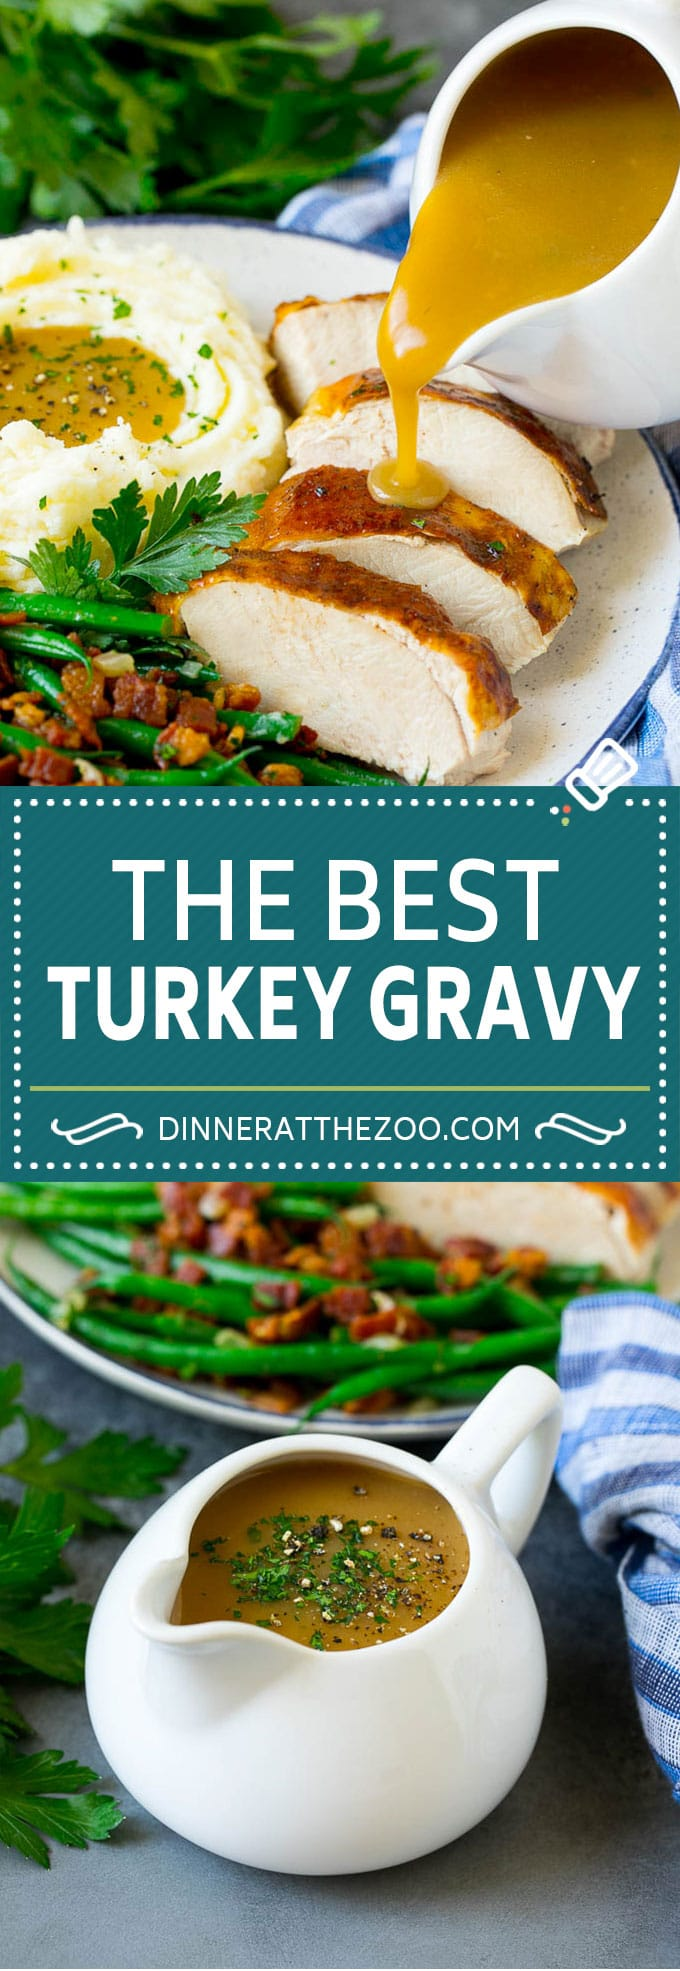 This is the best turkey gravy you'll ever have - it's smooth, creamy and full of savory flavors. Homemade gravy is a must have for any holiday meal, and my version is so simple to make.